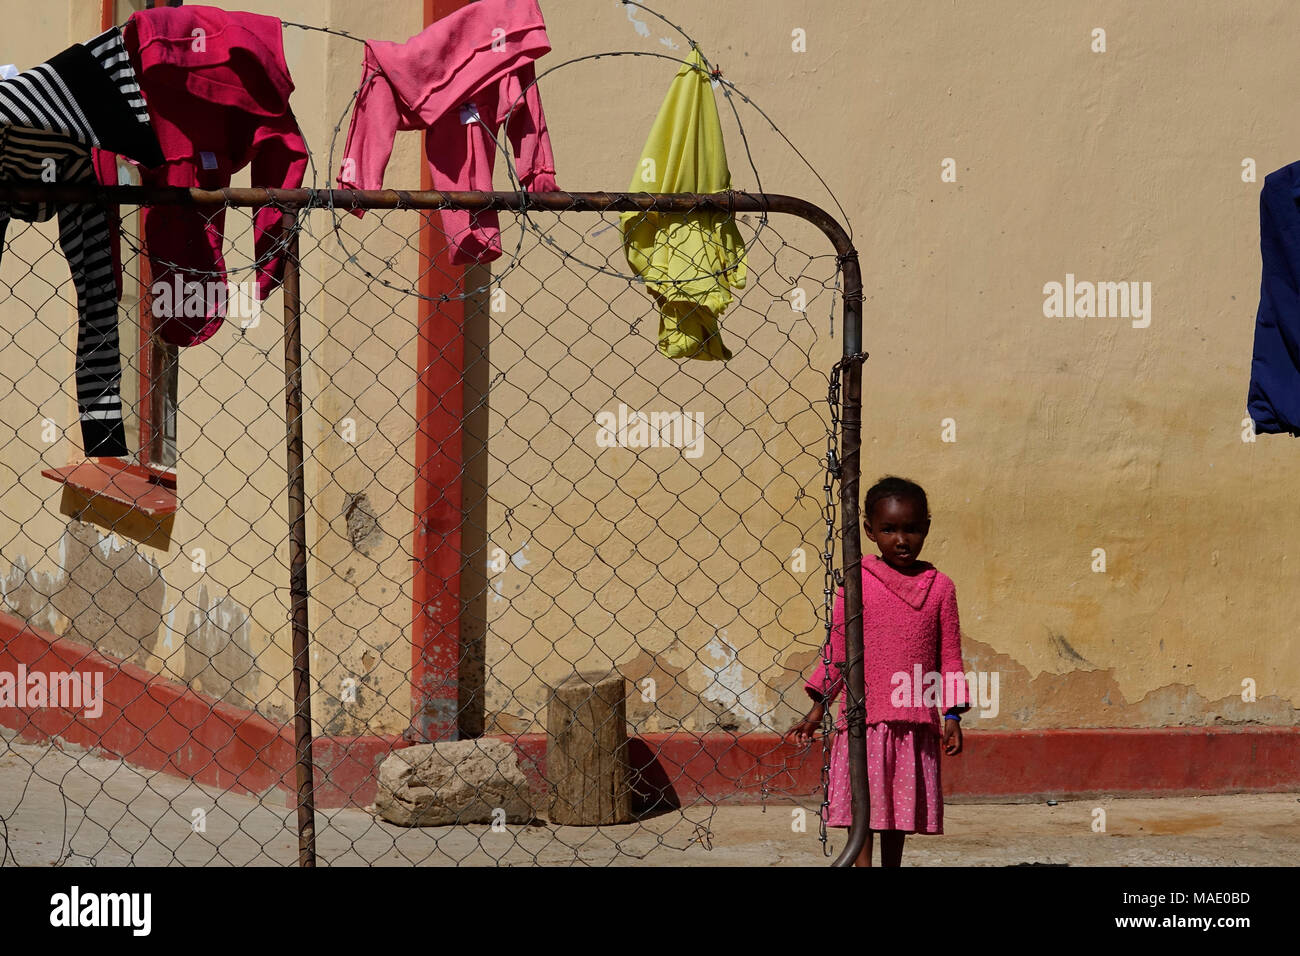 Namibia Windhoek Katutura clothes to dry on the fence - Stock Image